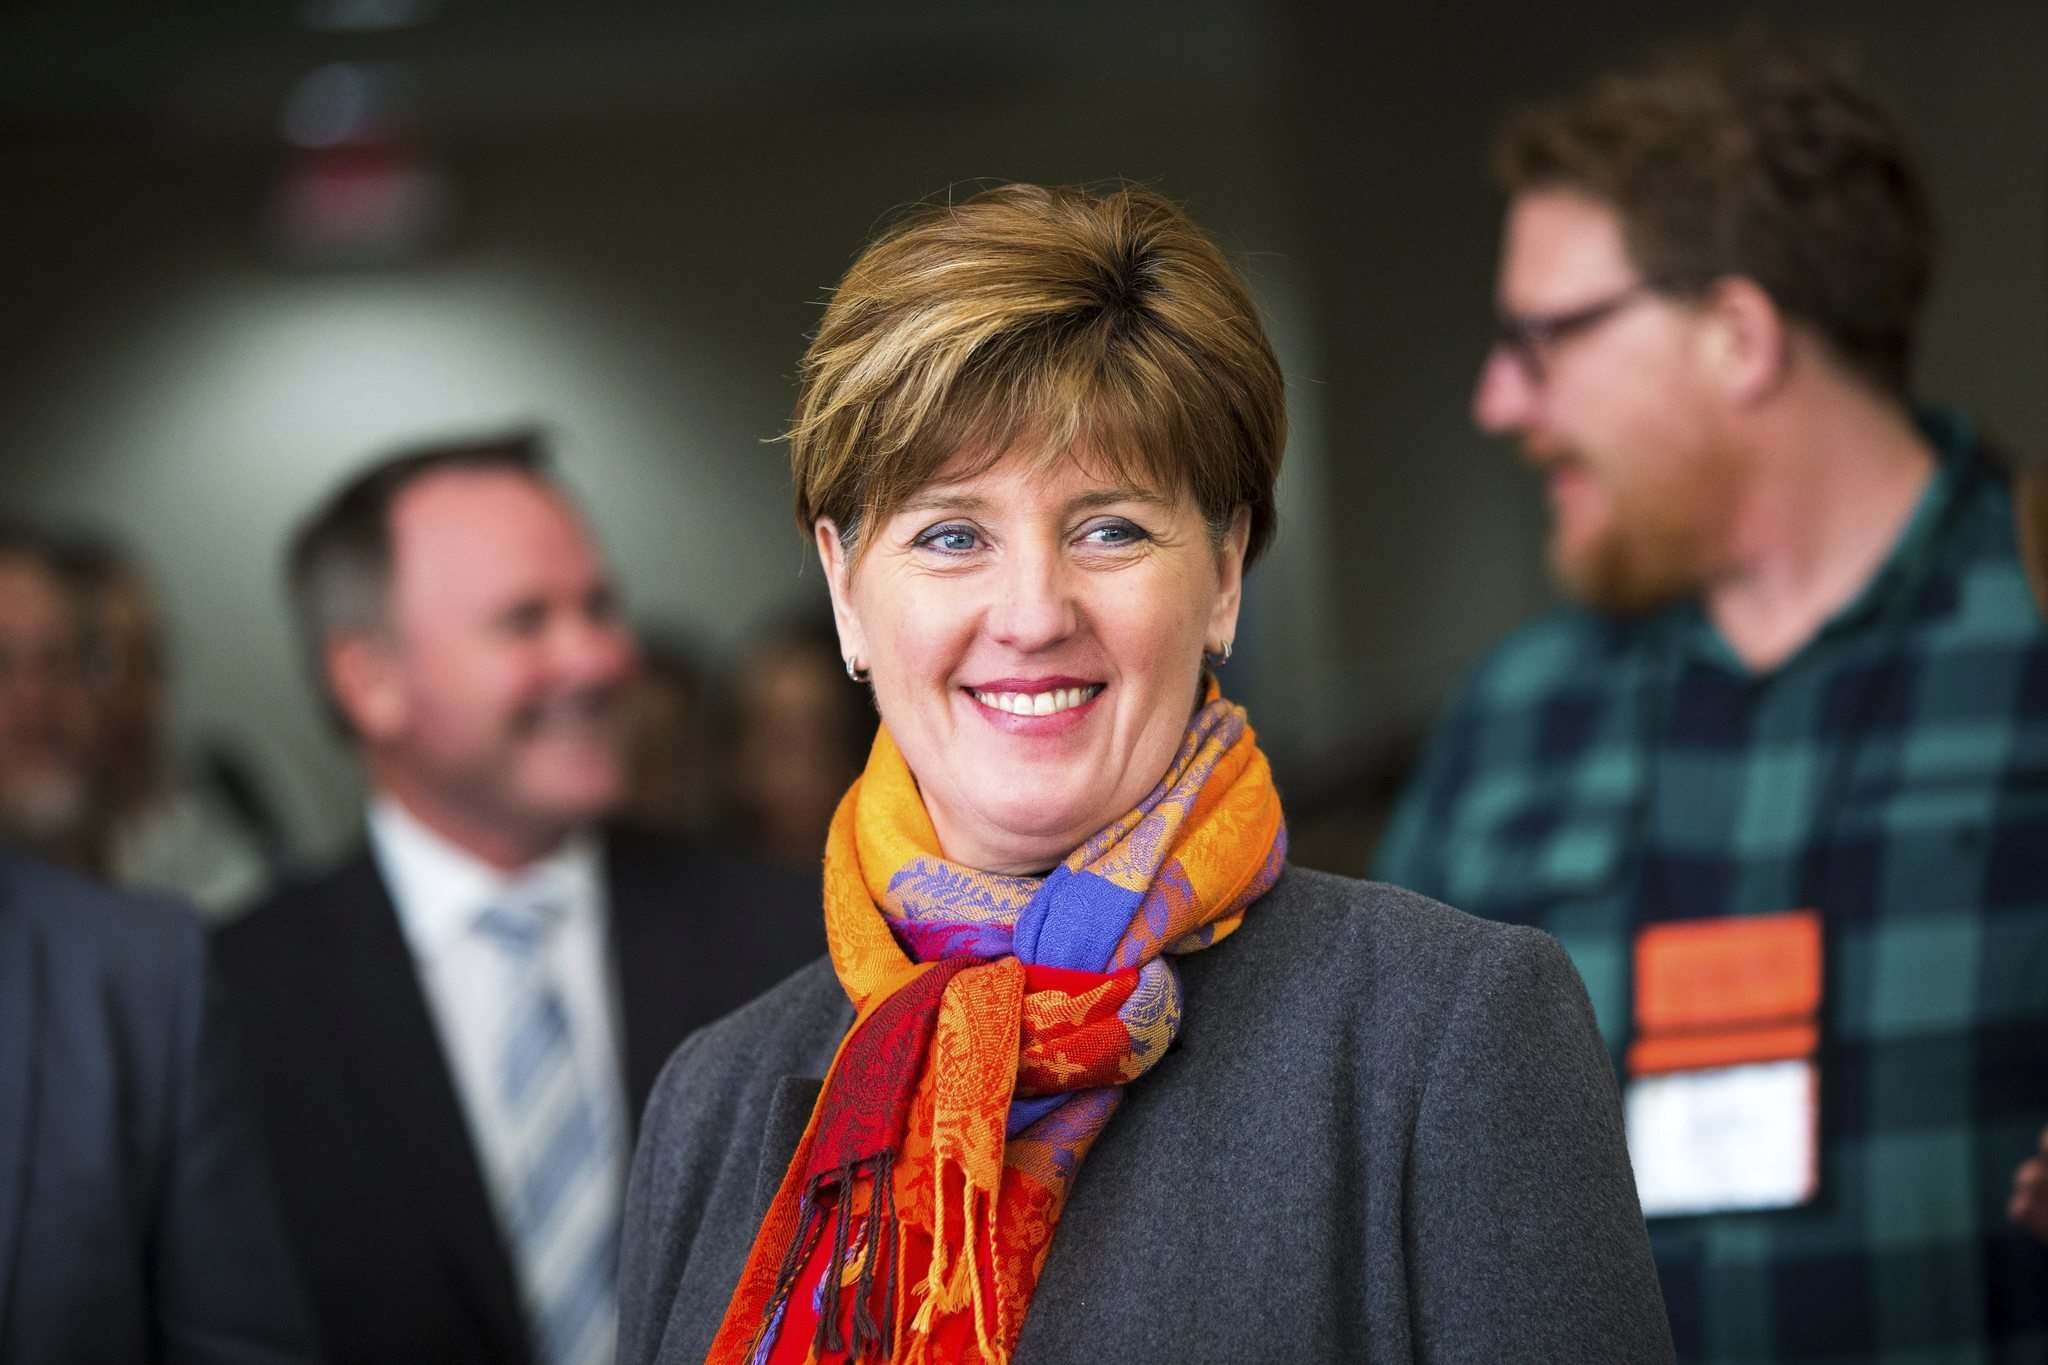 MIKAELA MACKENZIE / WINNIPEG FREE PRESS</p><p>Federal Agriculture Minister Marie-Claude Bibeau announces a grant of about $500,000 to look into the creation of insurance to protect hog farmers in case of disease outbreaks.</p>